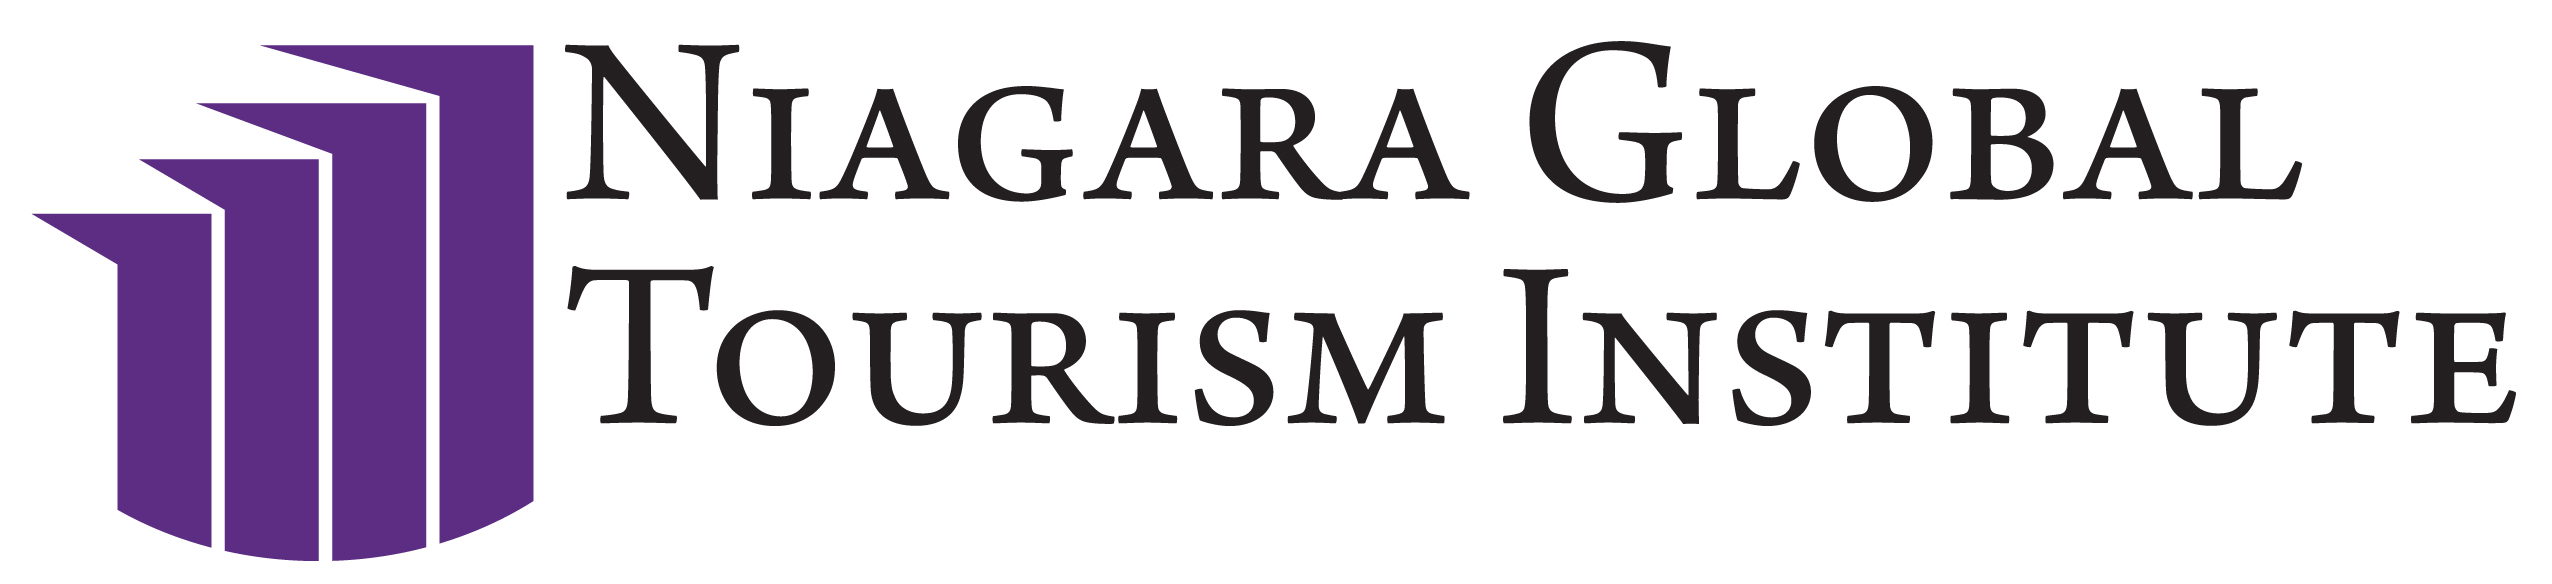 Niagara Global Tourism Institute Logo